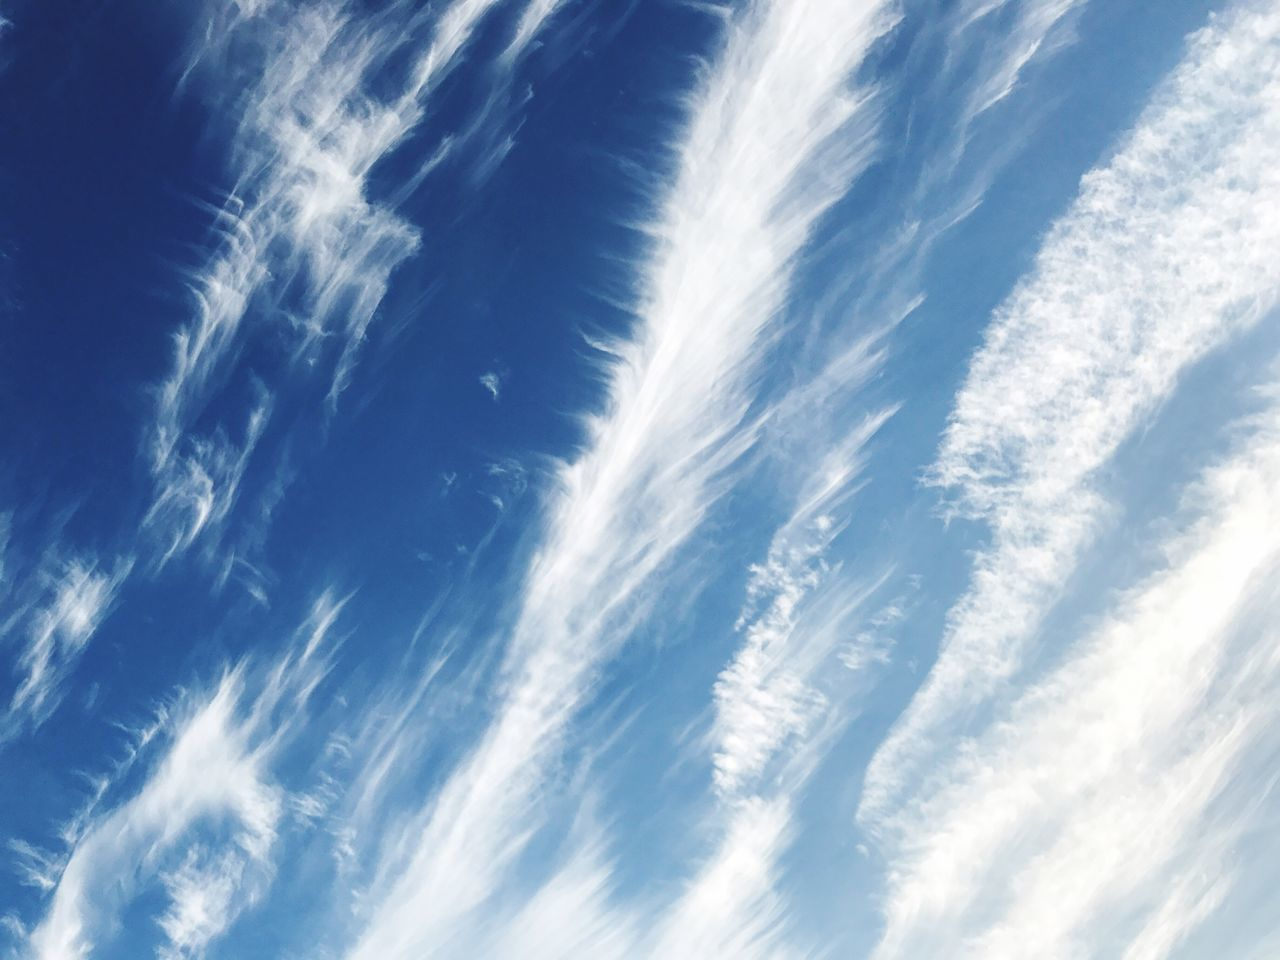 Sky over San Francisco // Sky Vapor Trail Cirrus Low Angle View Scenics Nature White No People Speed Outdoors Beauty In Nature Cloud - Sky Backgrounds Day Contrail Waterfall